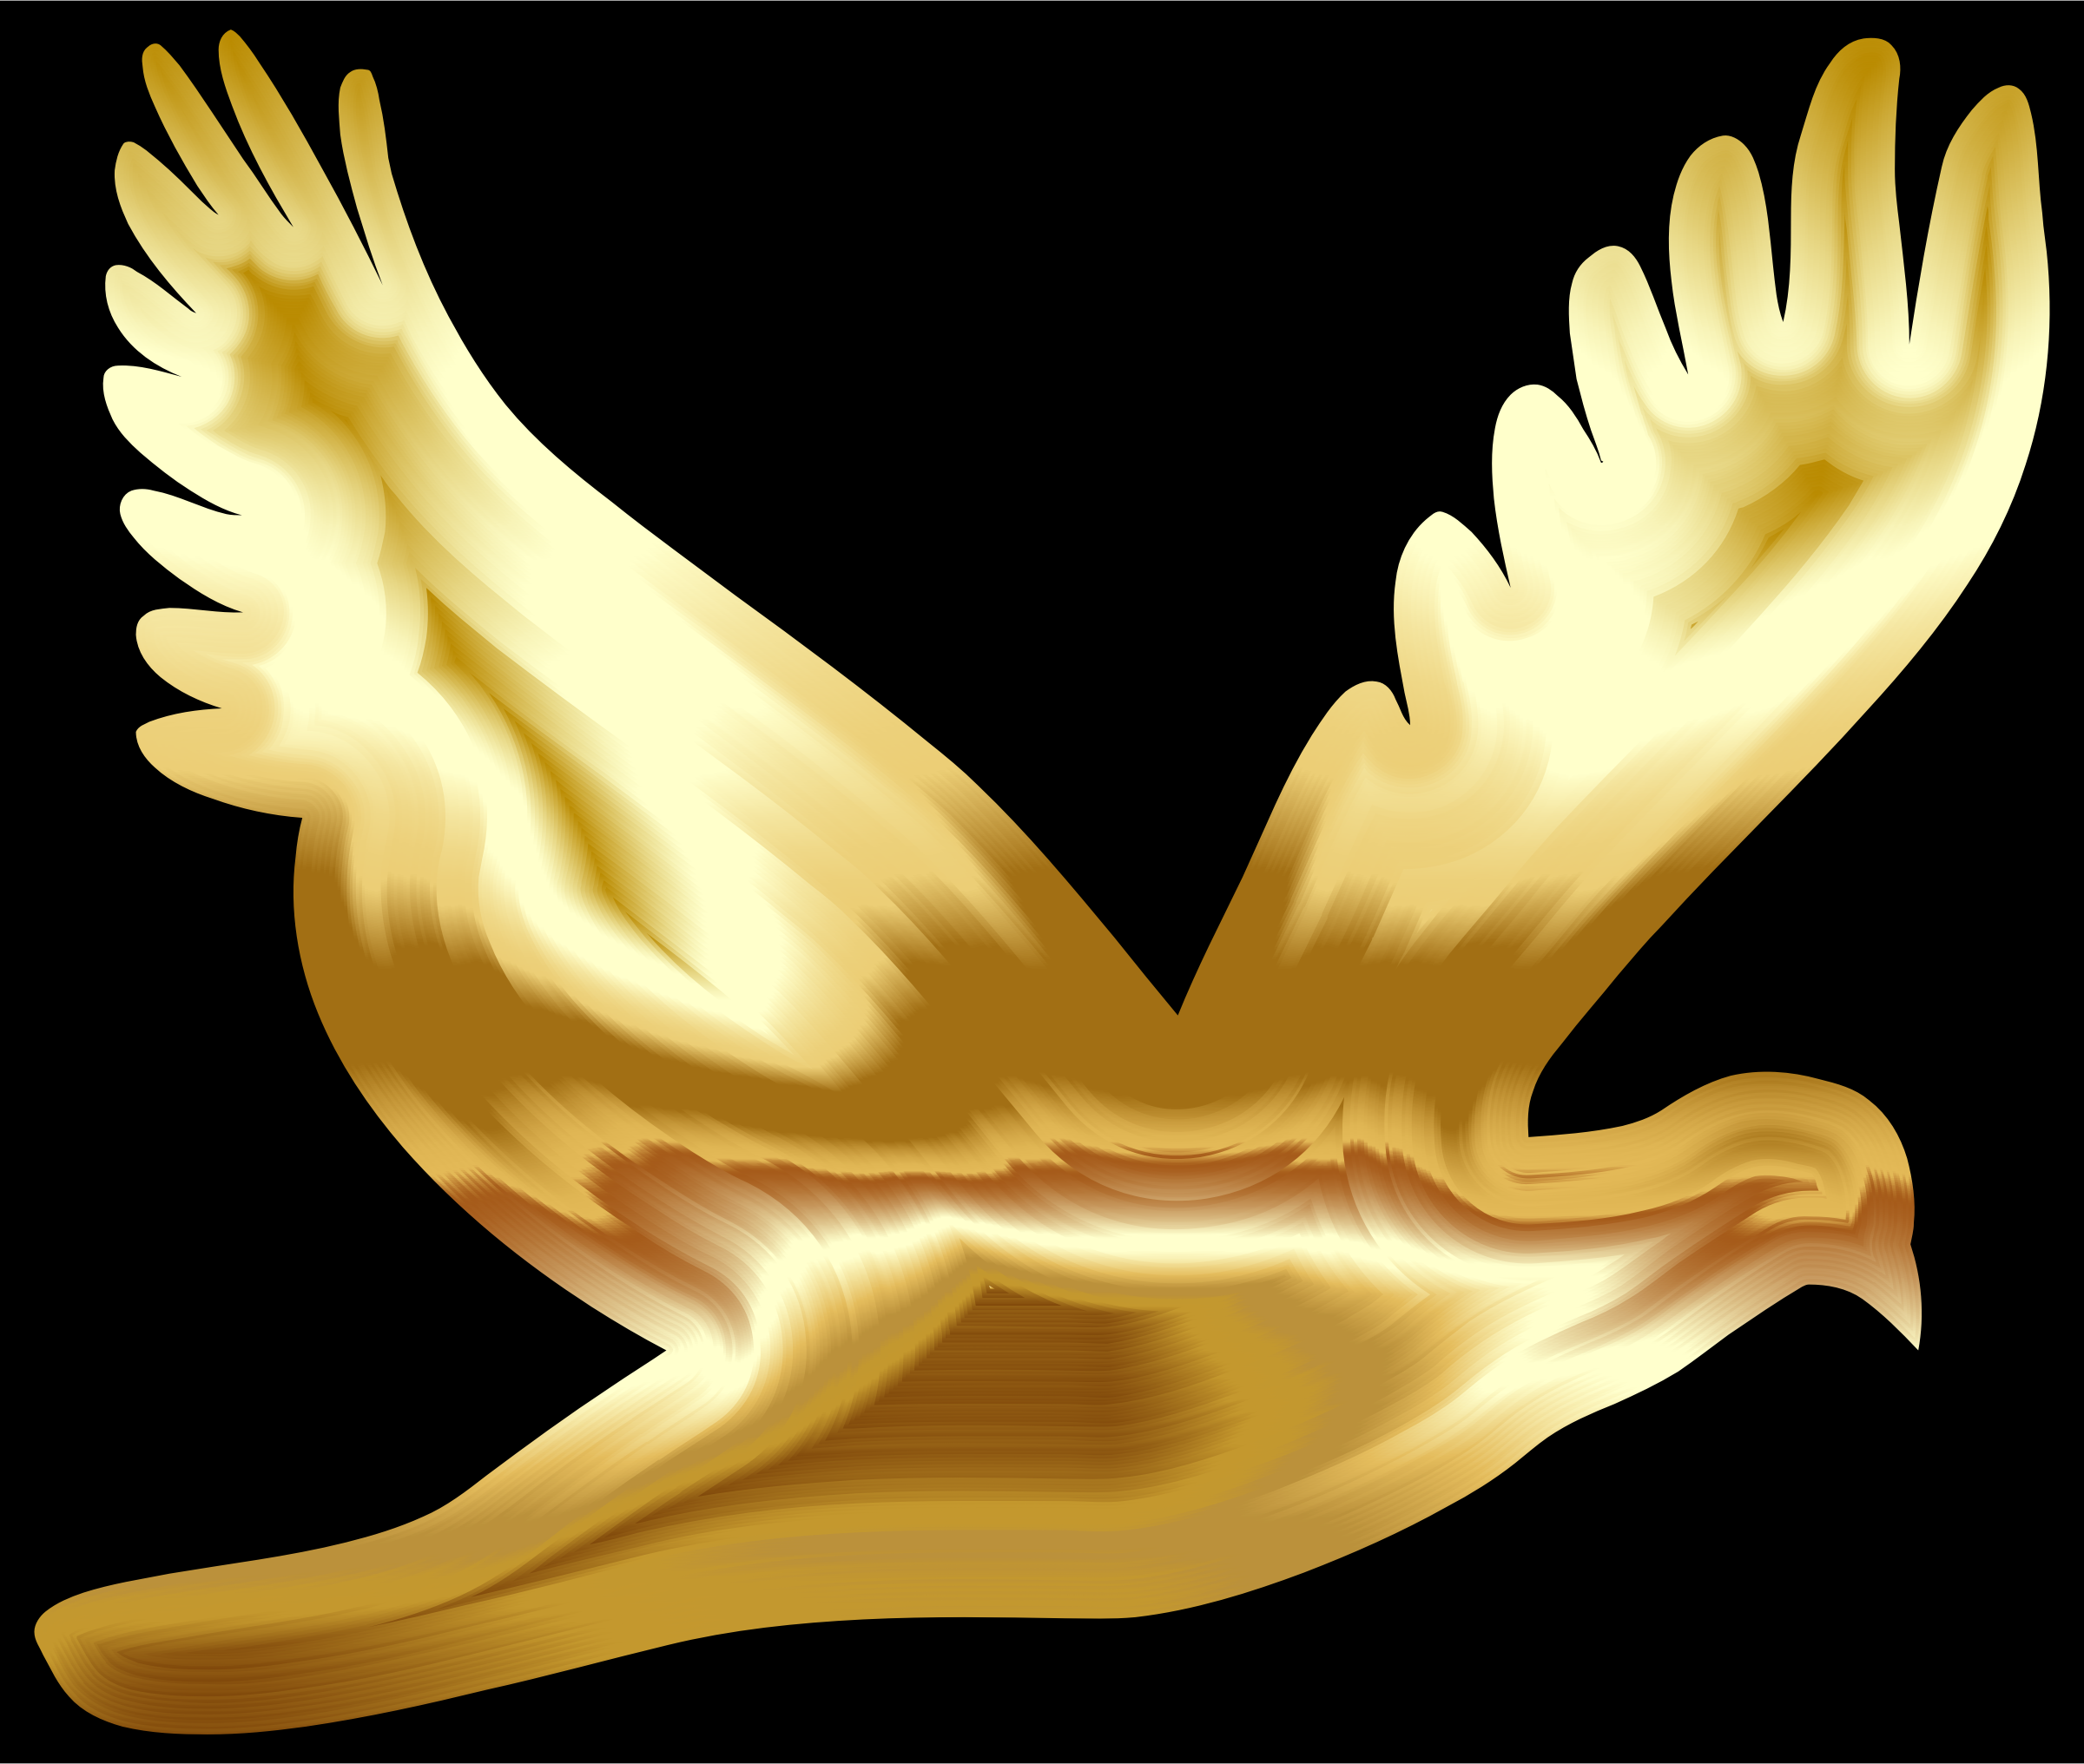 Gold Flying Dove Silhouette by GDJ